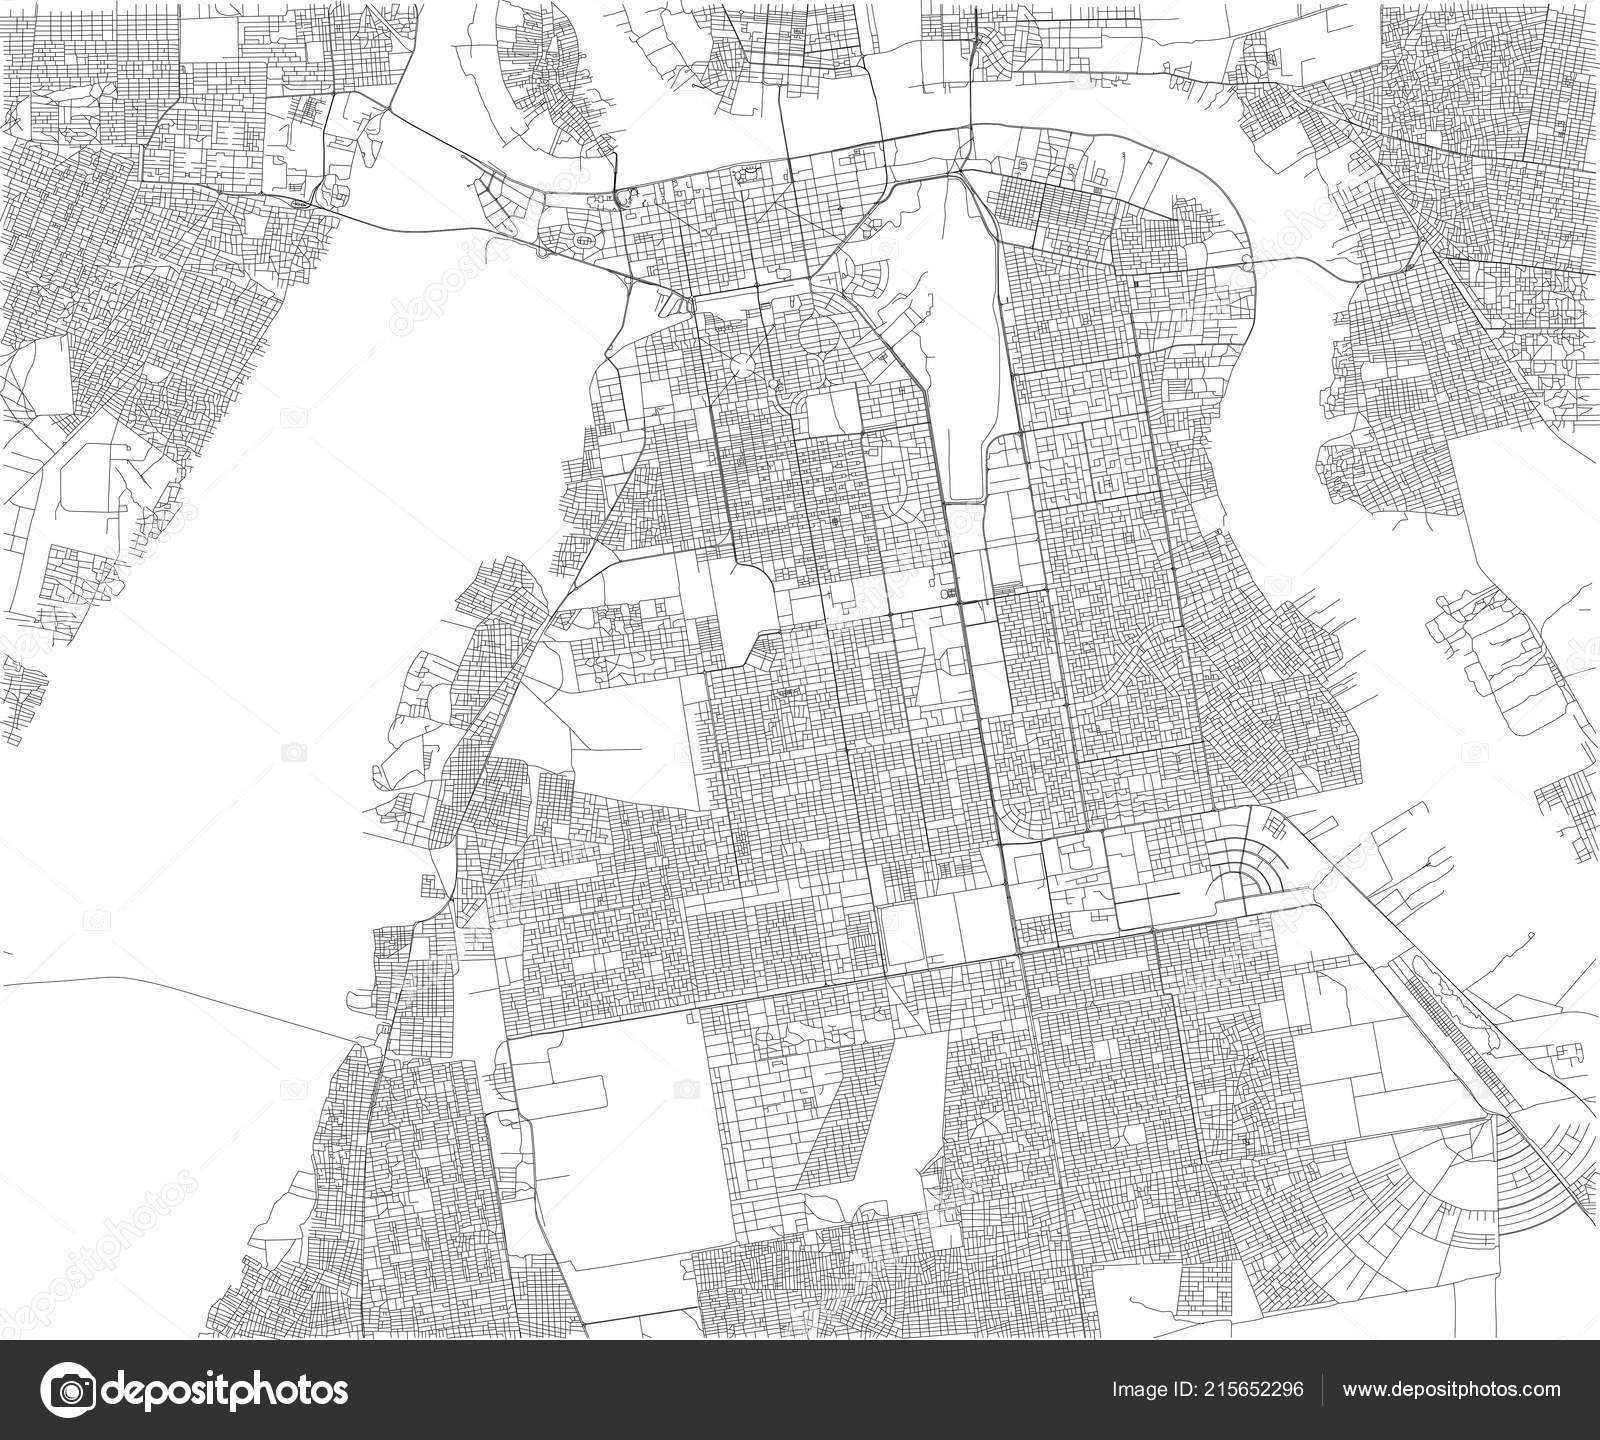 Map Khartoum Satellite View City Sudan Streets Africa Stock Vector